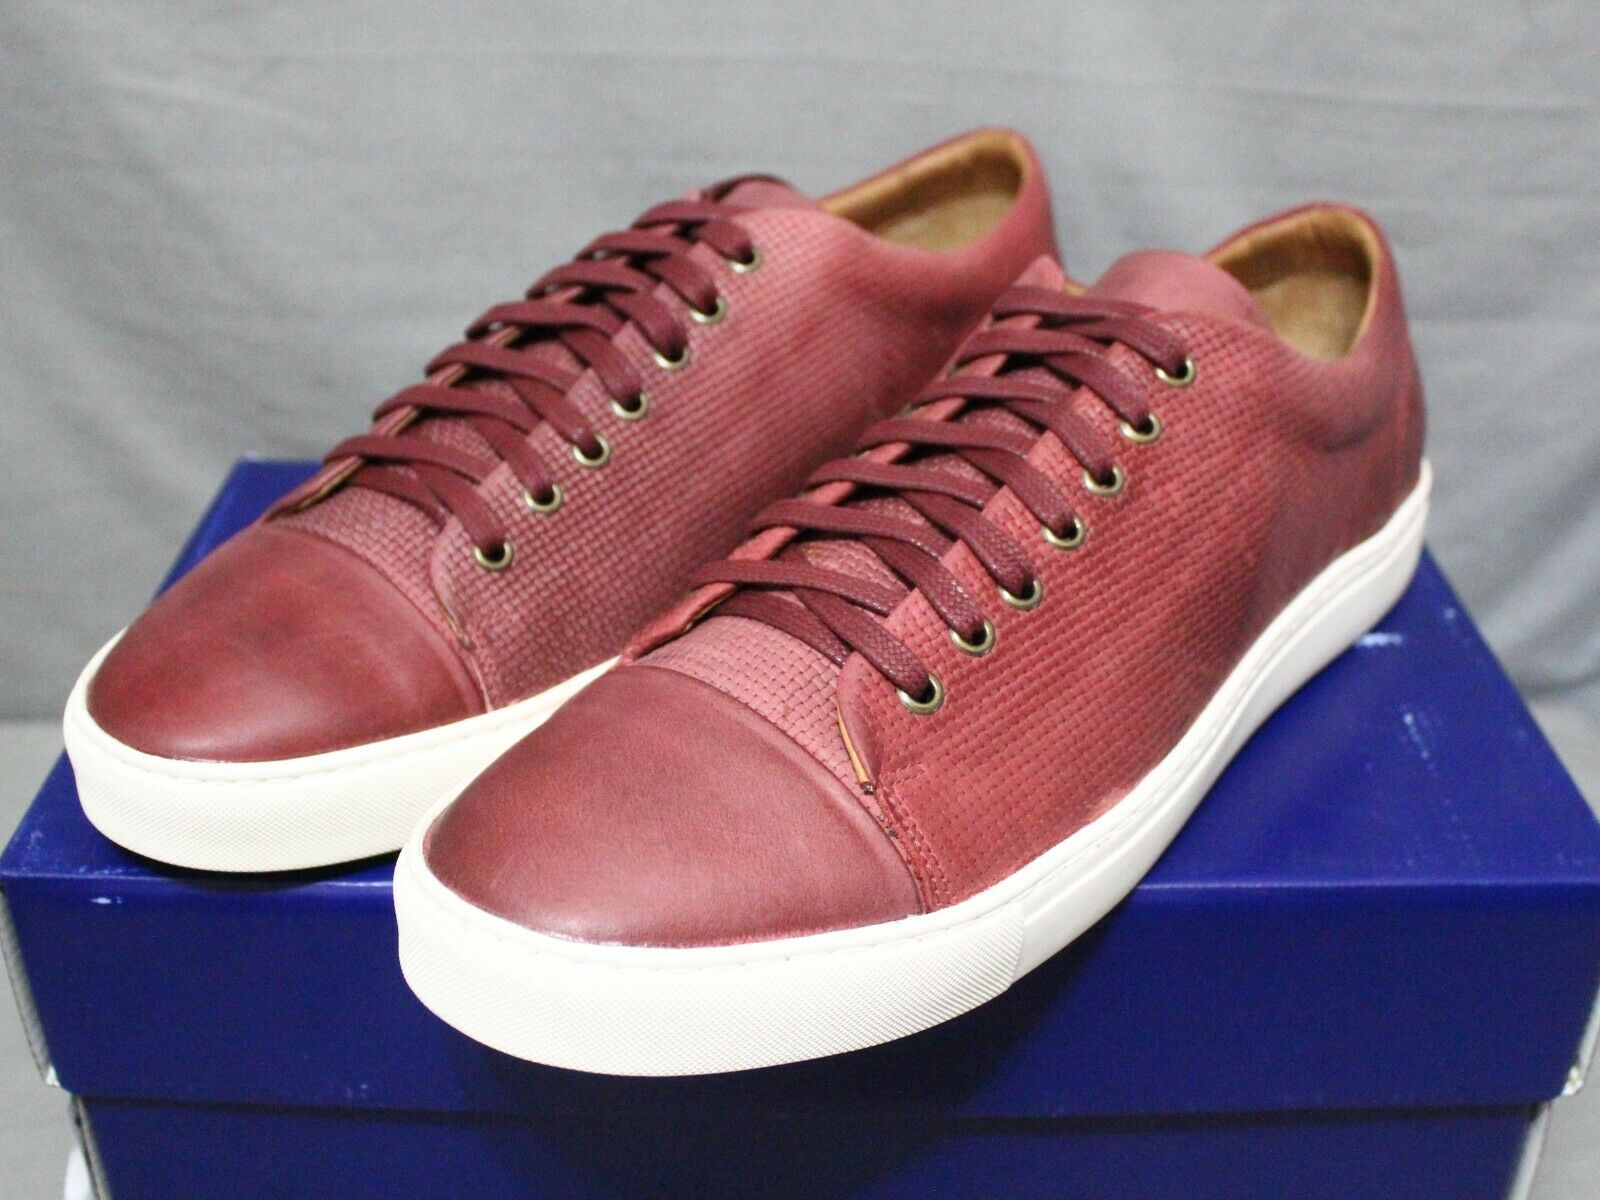 BROTHERS UNITED mens low heel lace up leather ruby ILLINOIS shoes size 13 M New